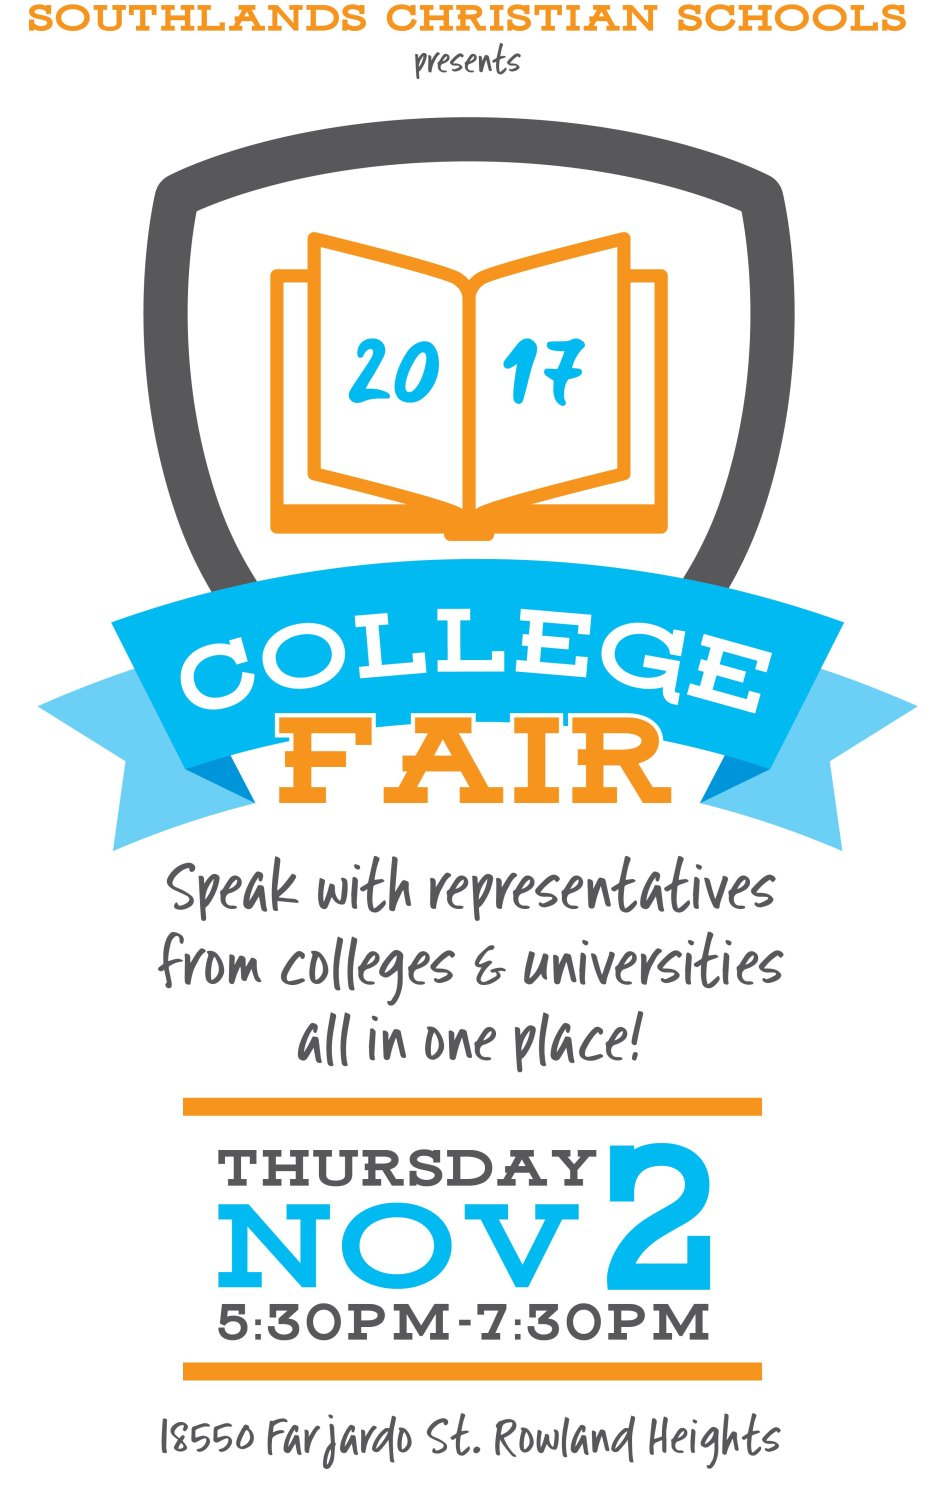 questions to ask at a college fair southlands christian schools